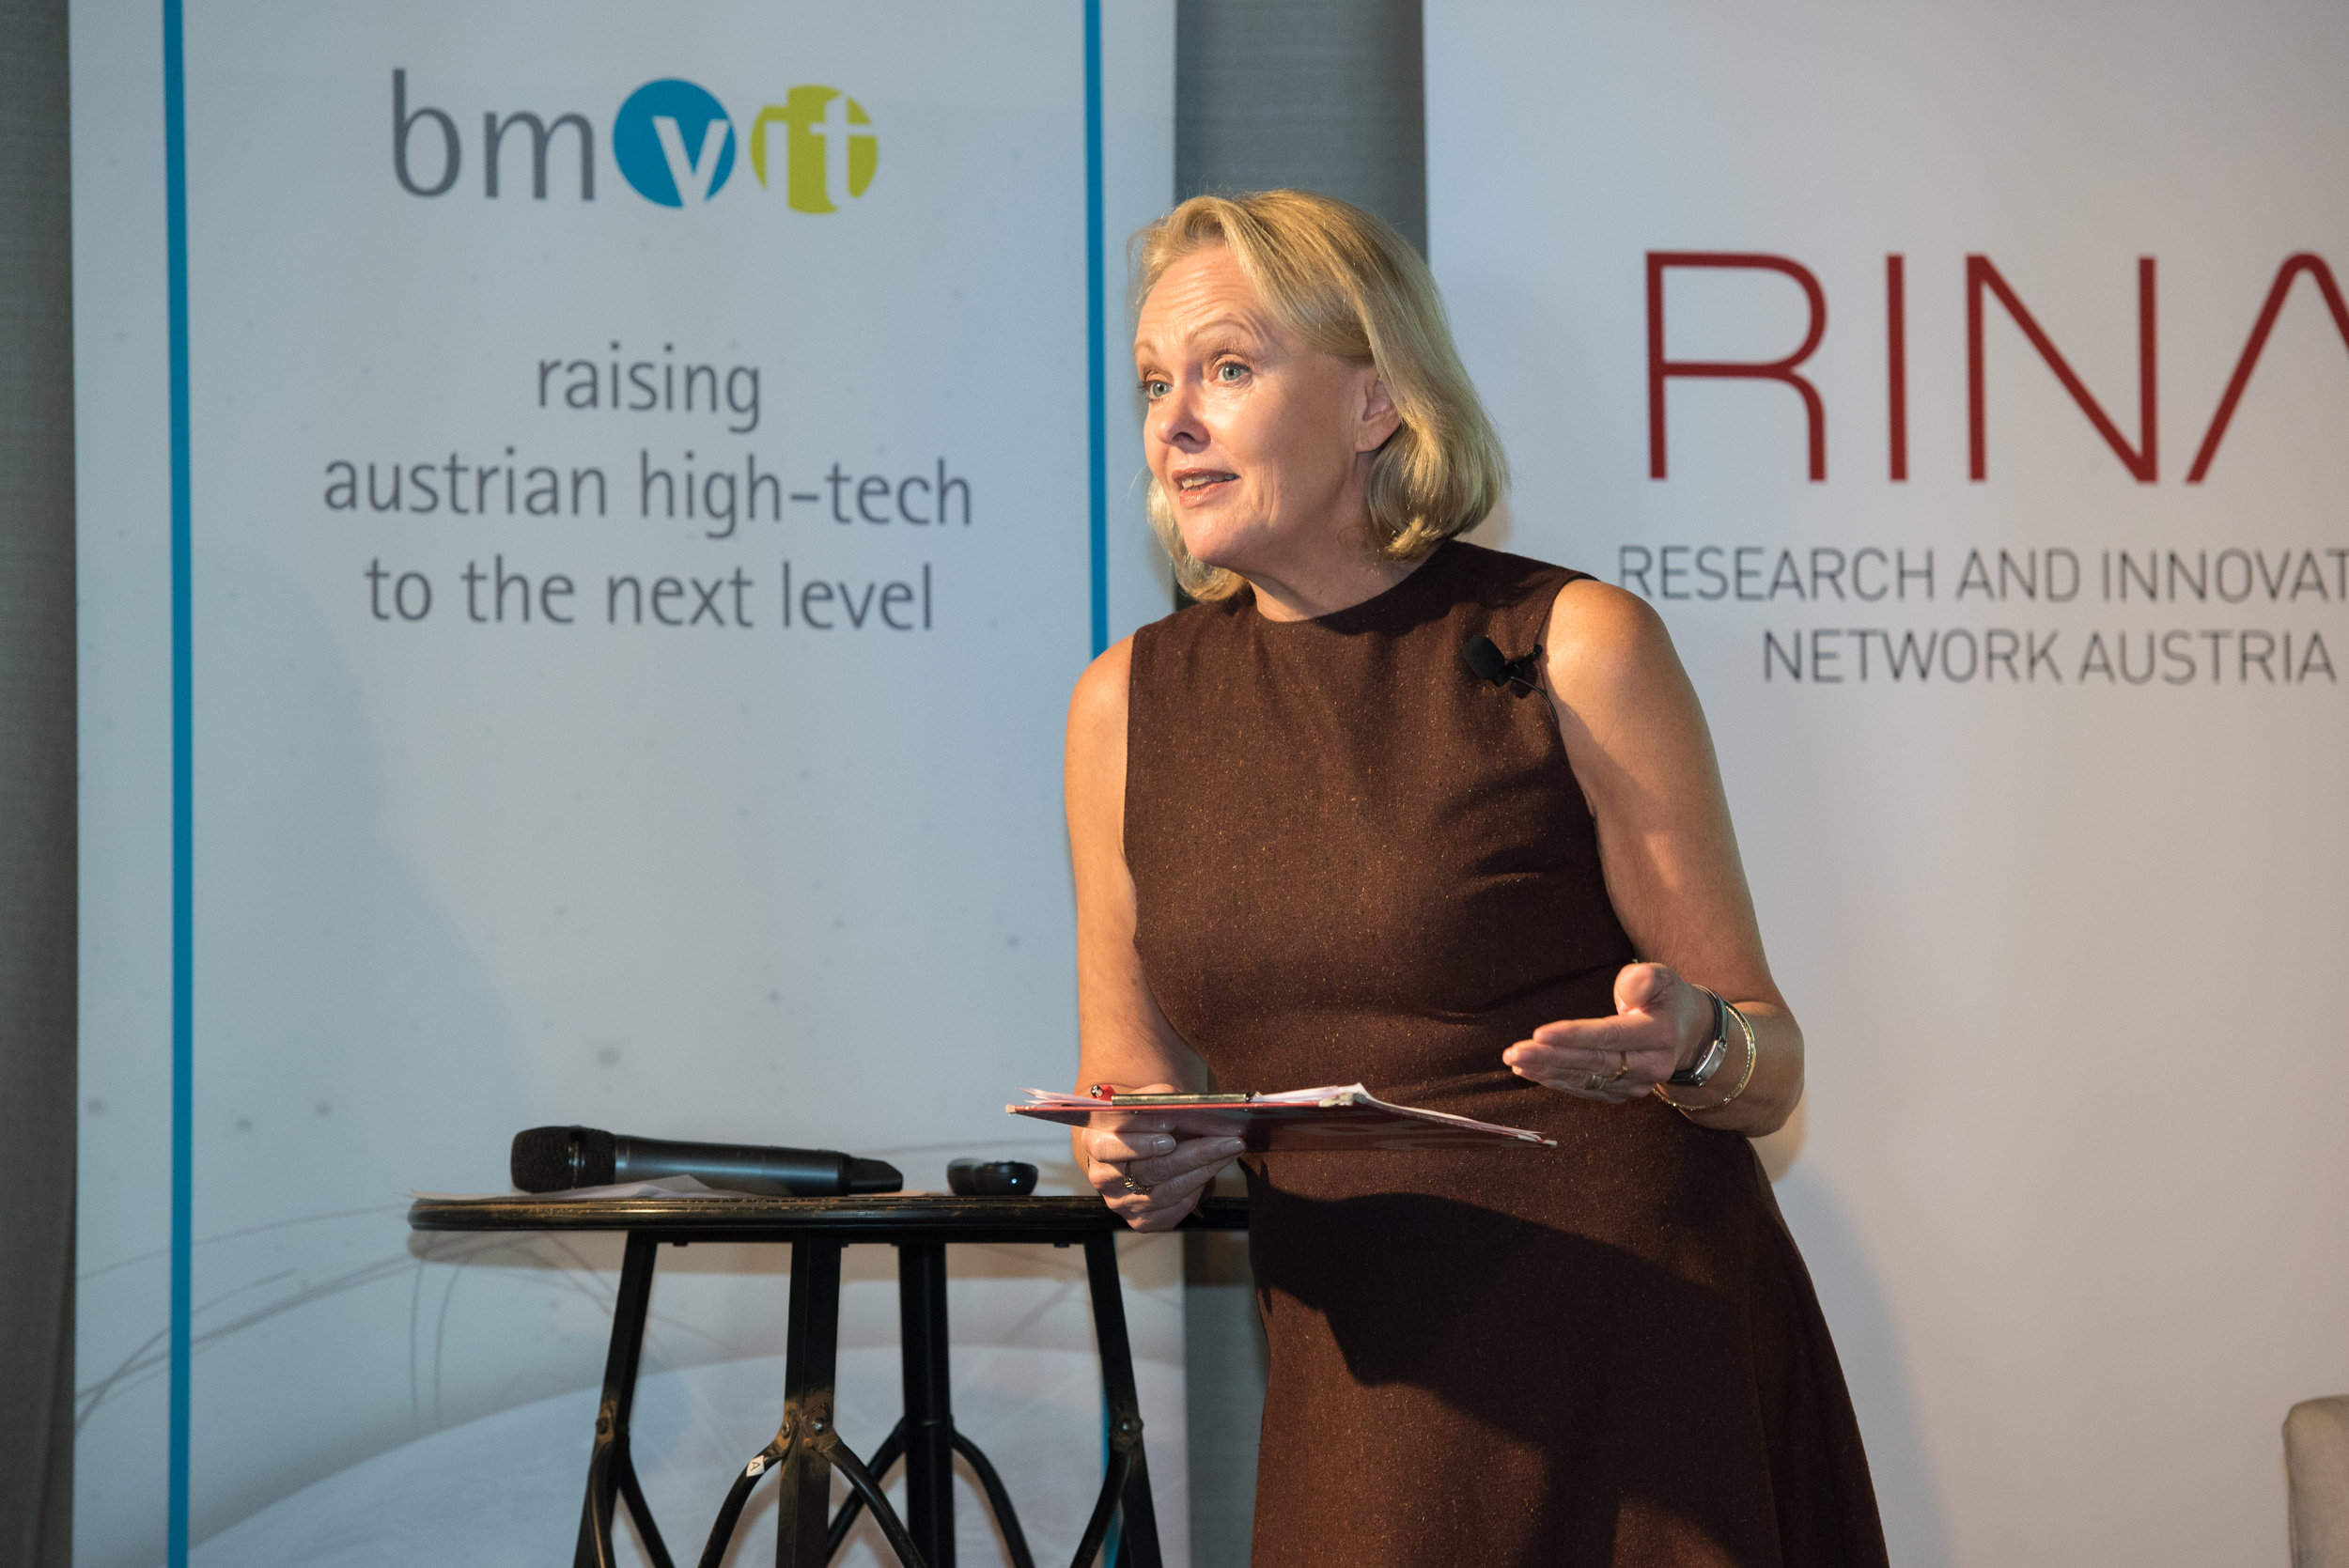 """Hannelore Veit, Washington DC Bureau Chief of the Austrian Broadcasting Corporation ORF and official moderator of the ARIT 2017, during the """"News from US Research, Technology, and Innovation"""" panel"""